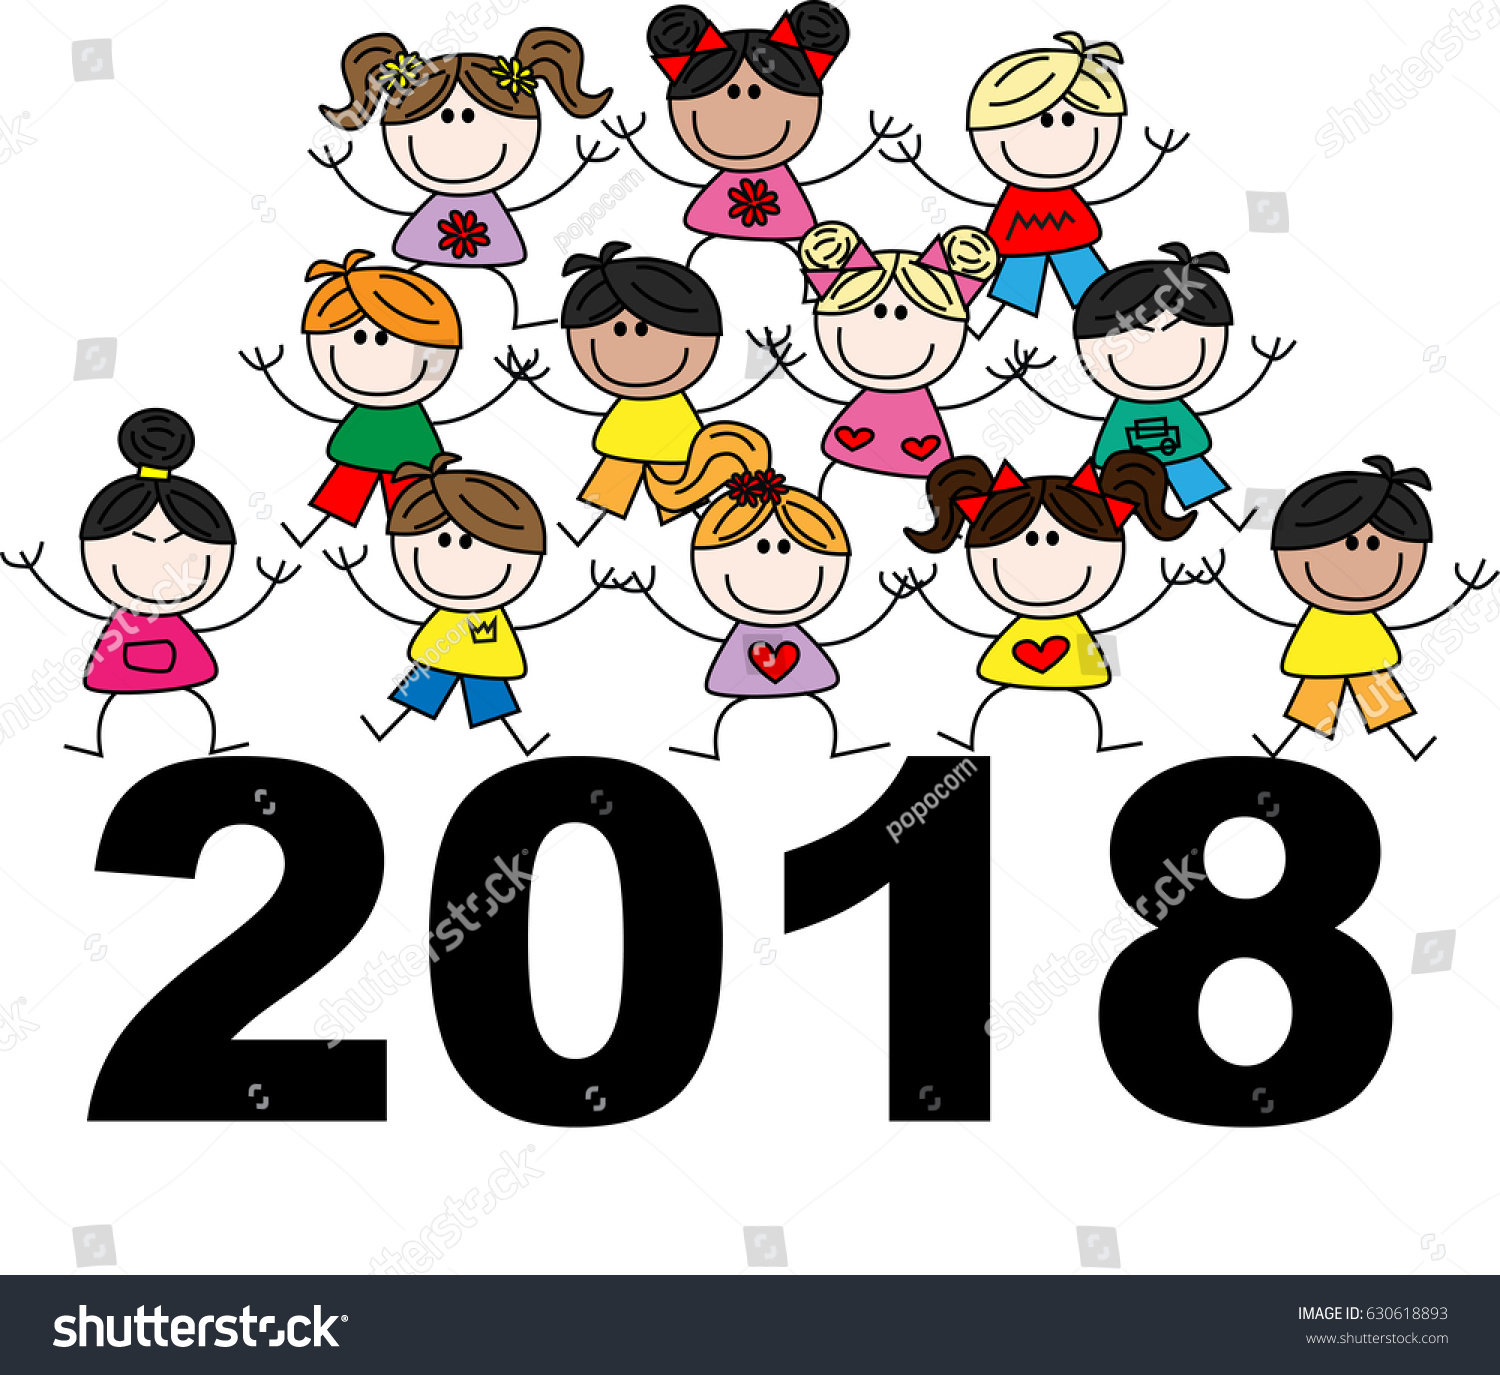 royalty free stock illustration of happy new year 2018 mixed ethnic rh shutterstock com free religious happy new year clip art free religious happy new year clip art